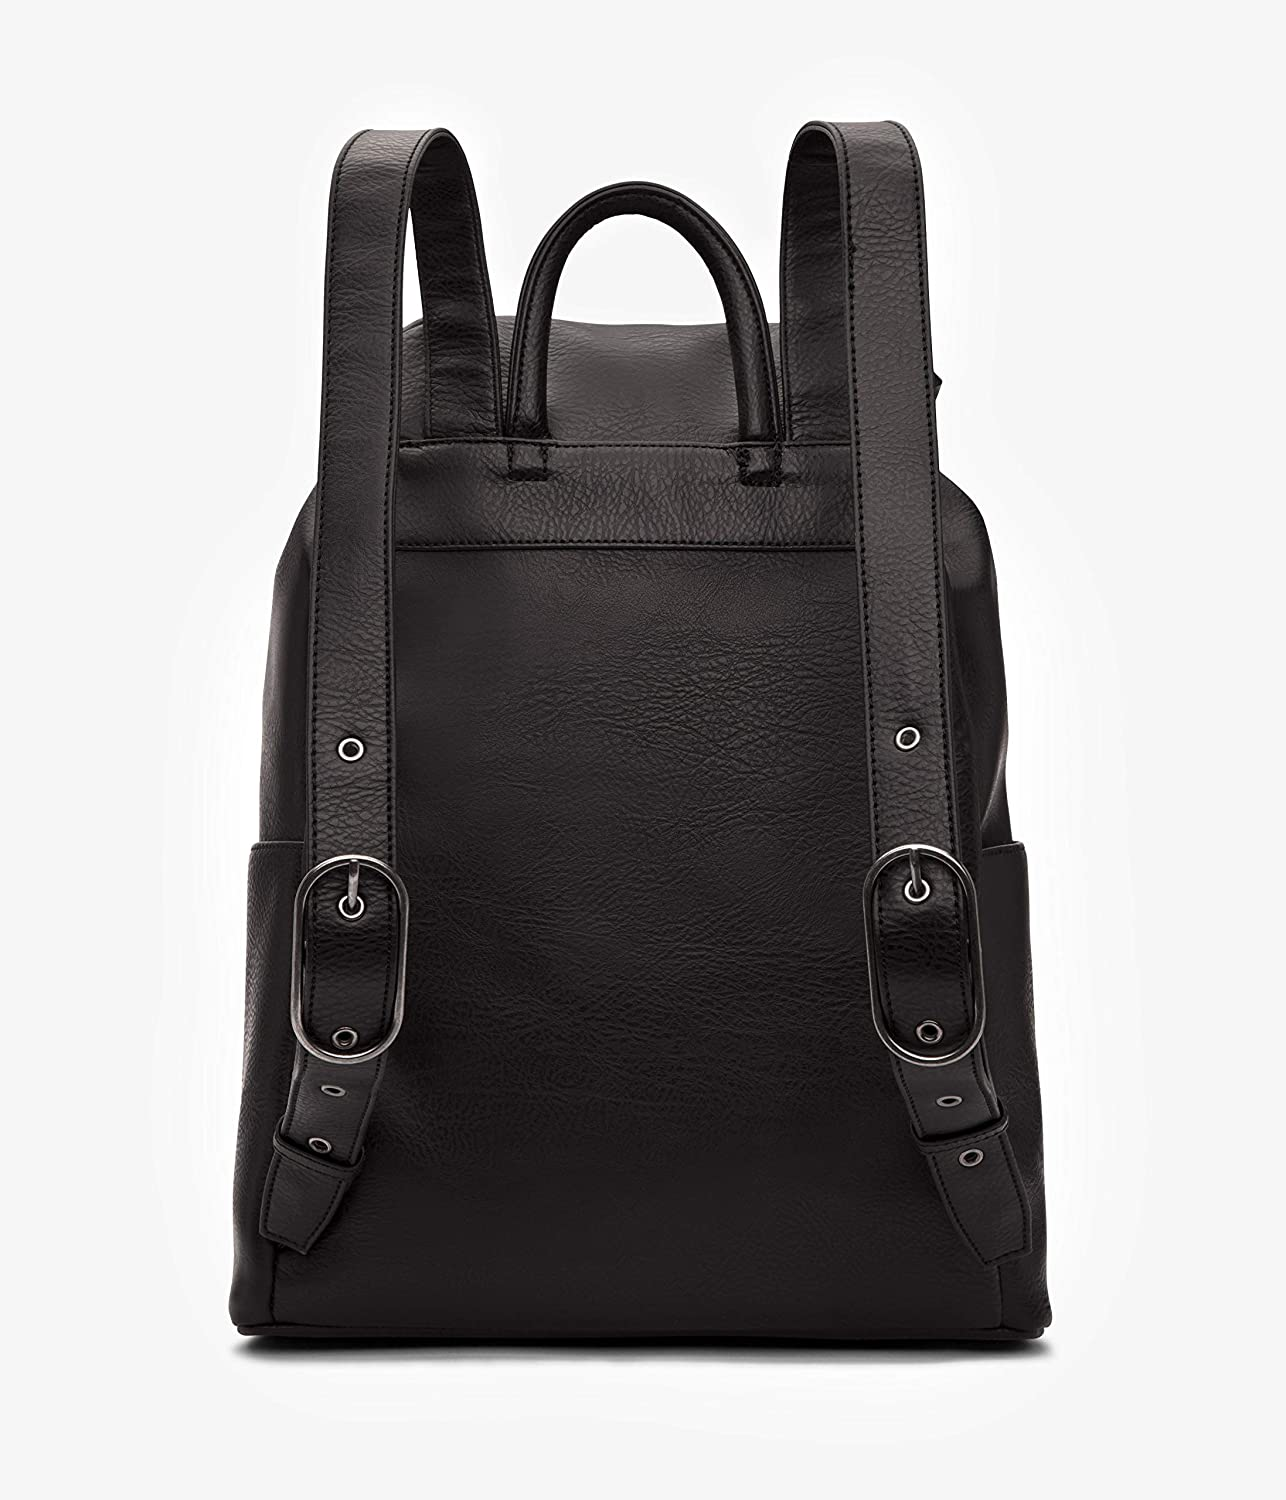 Matt /& Nat Greco Dwell Backpack Black